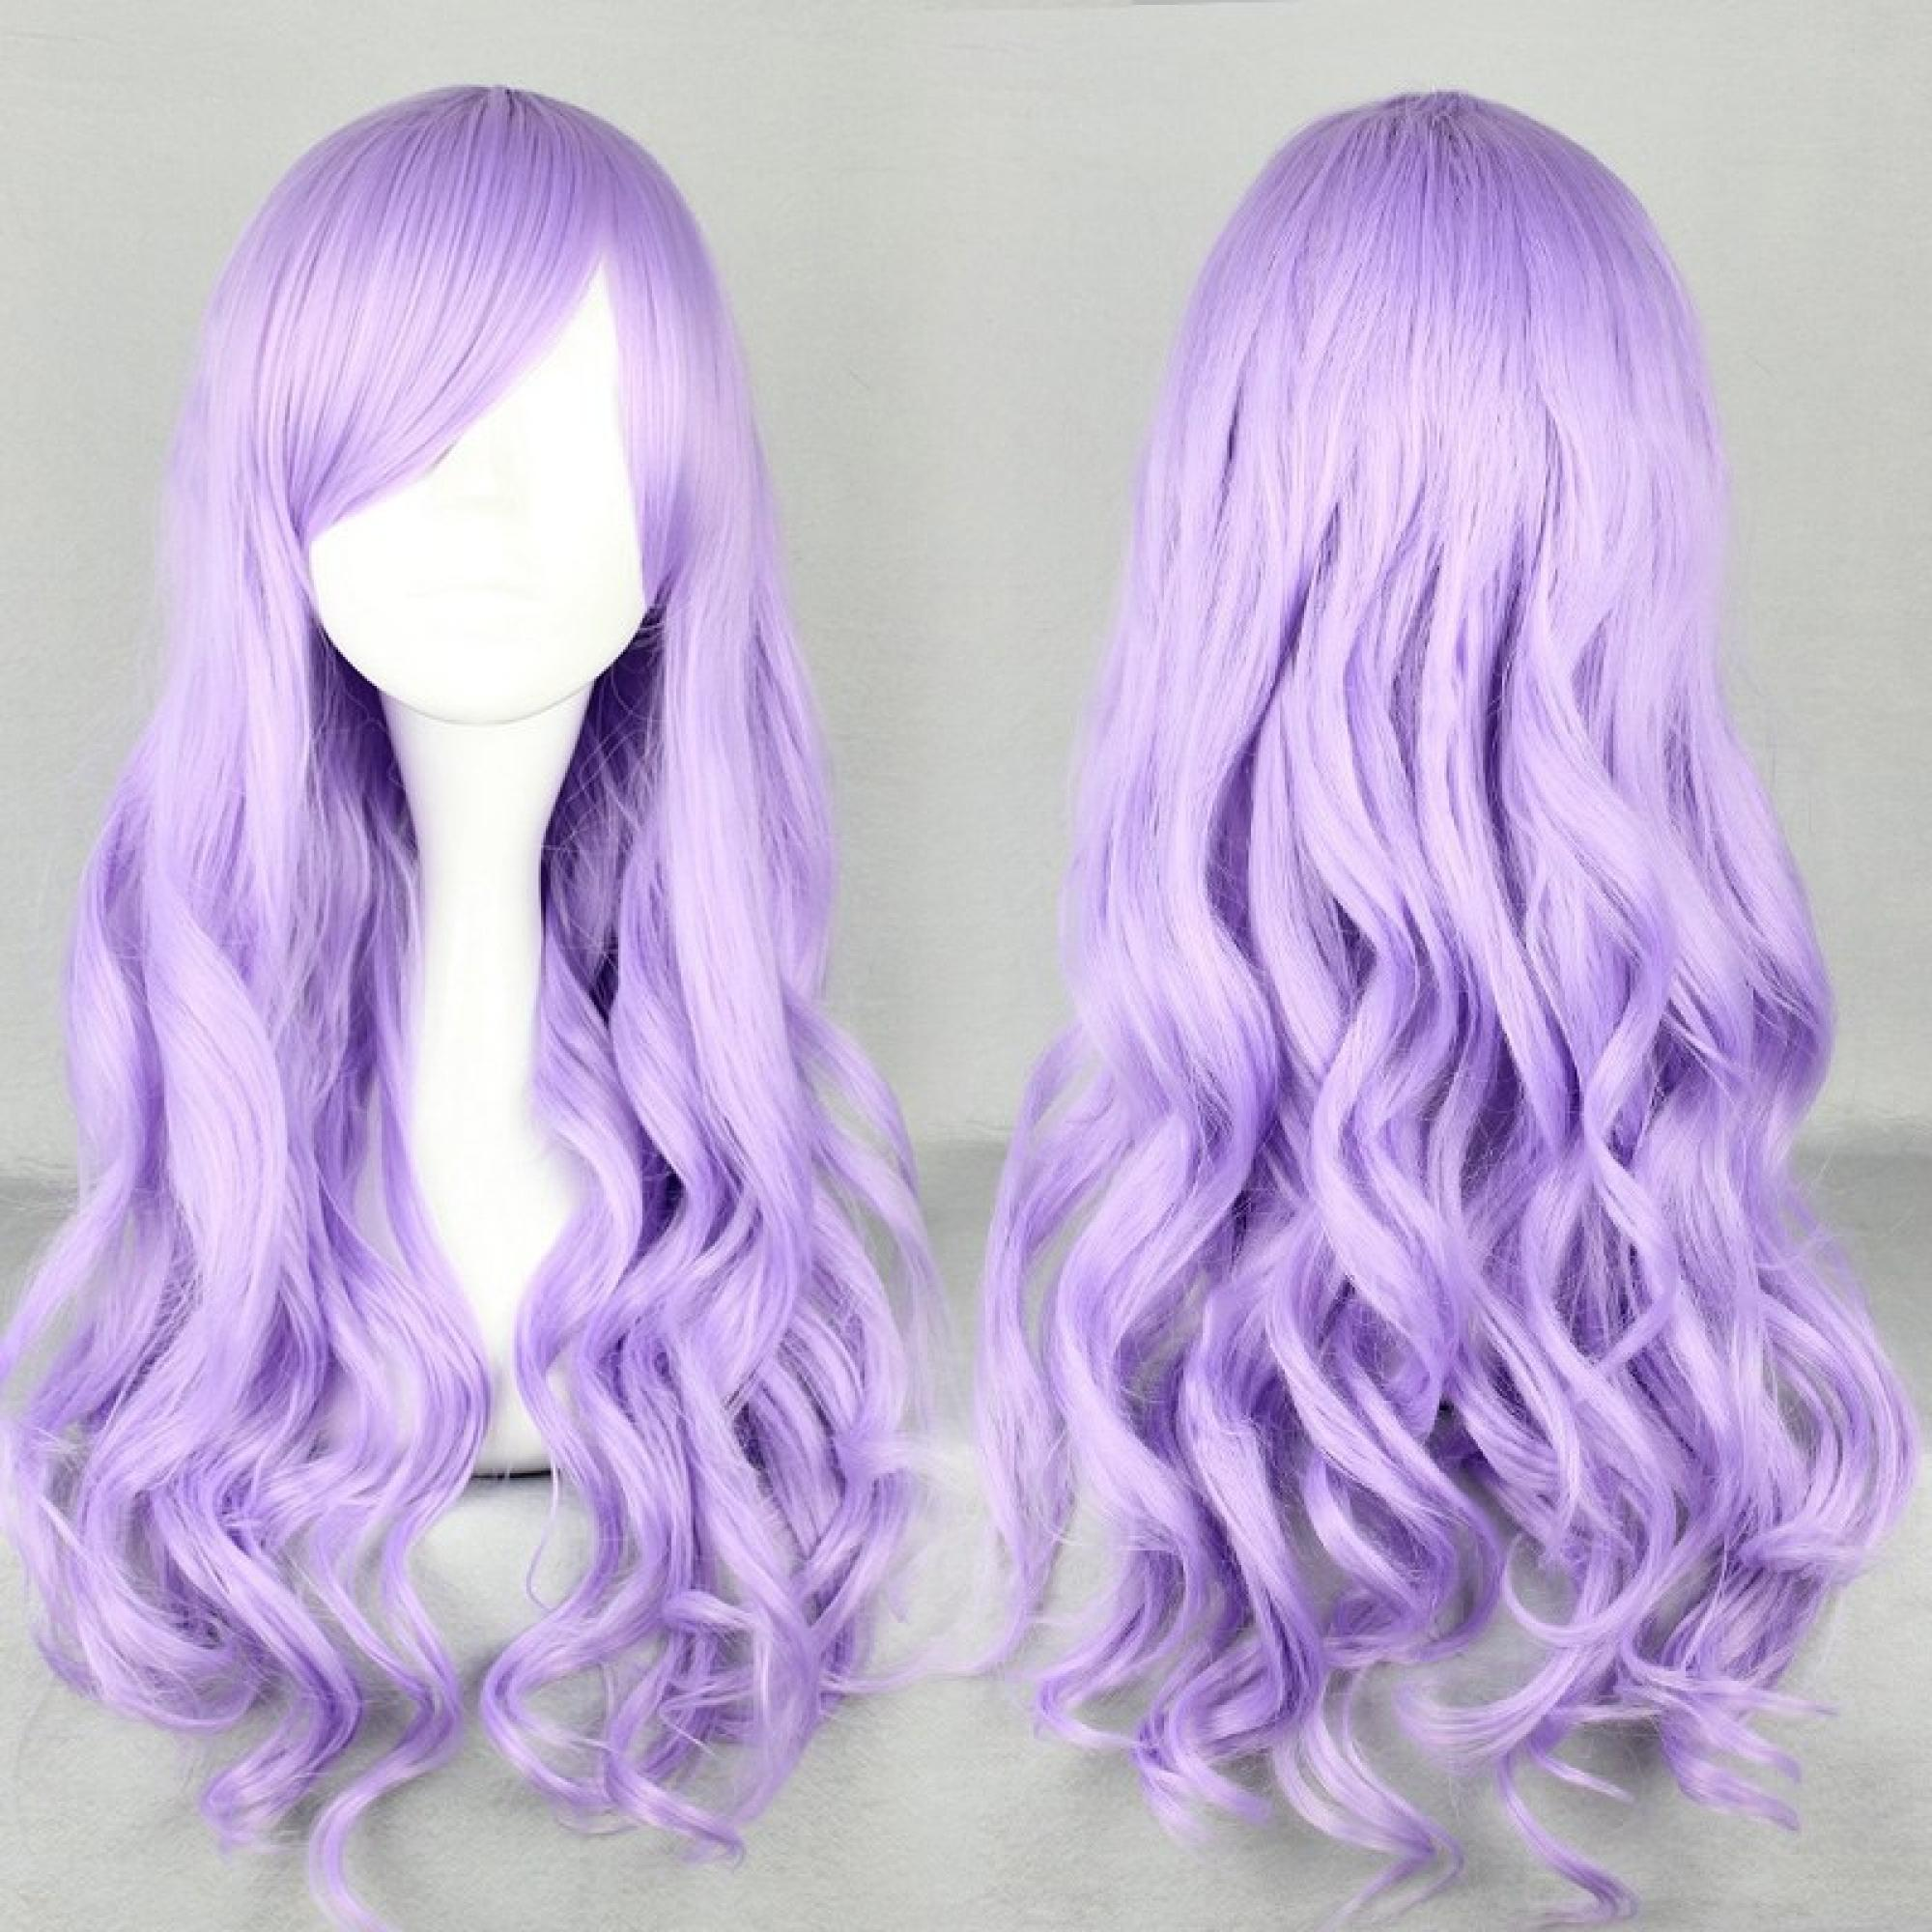 Fashion 70cm Long Wave Classical Purple Synthetic High Quality Women Part